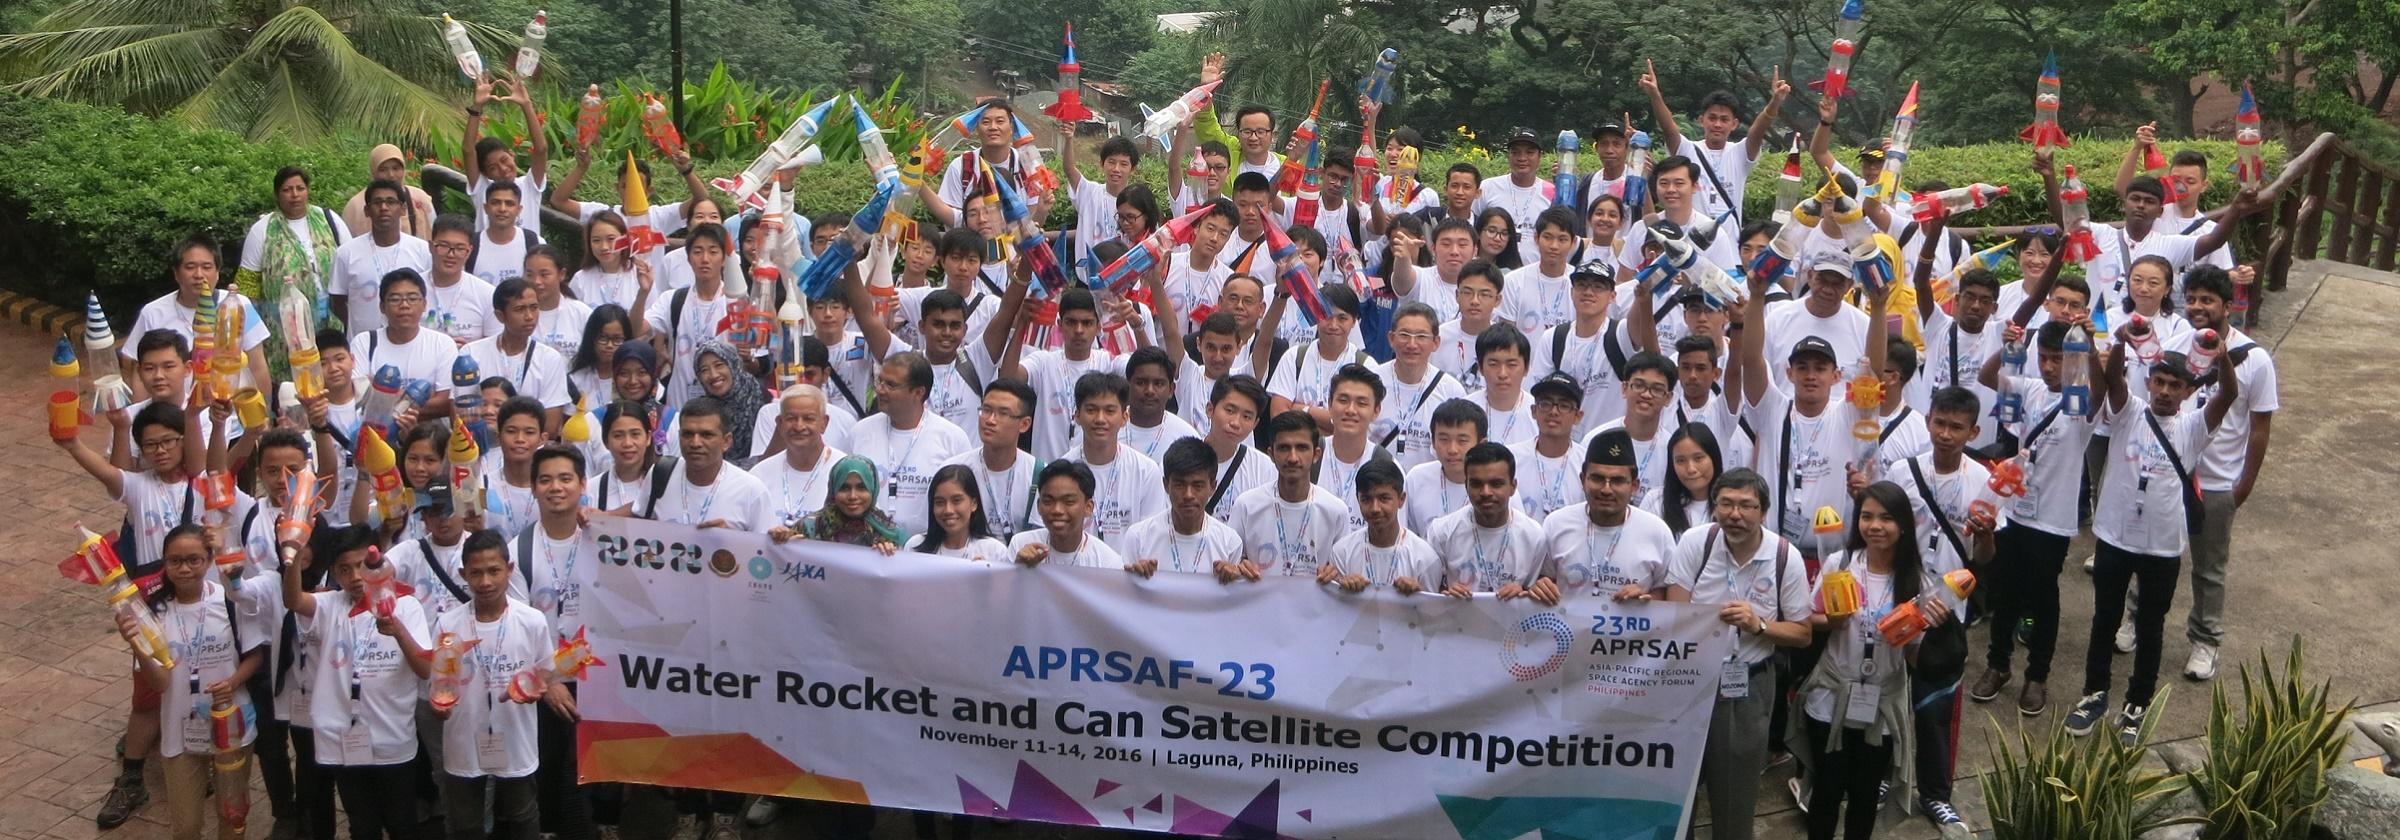 APRSAF Water Rocket Event